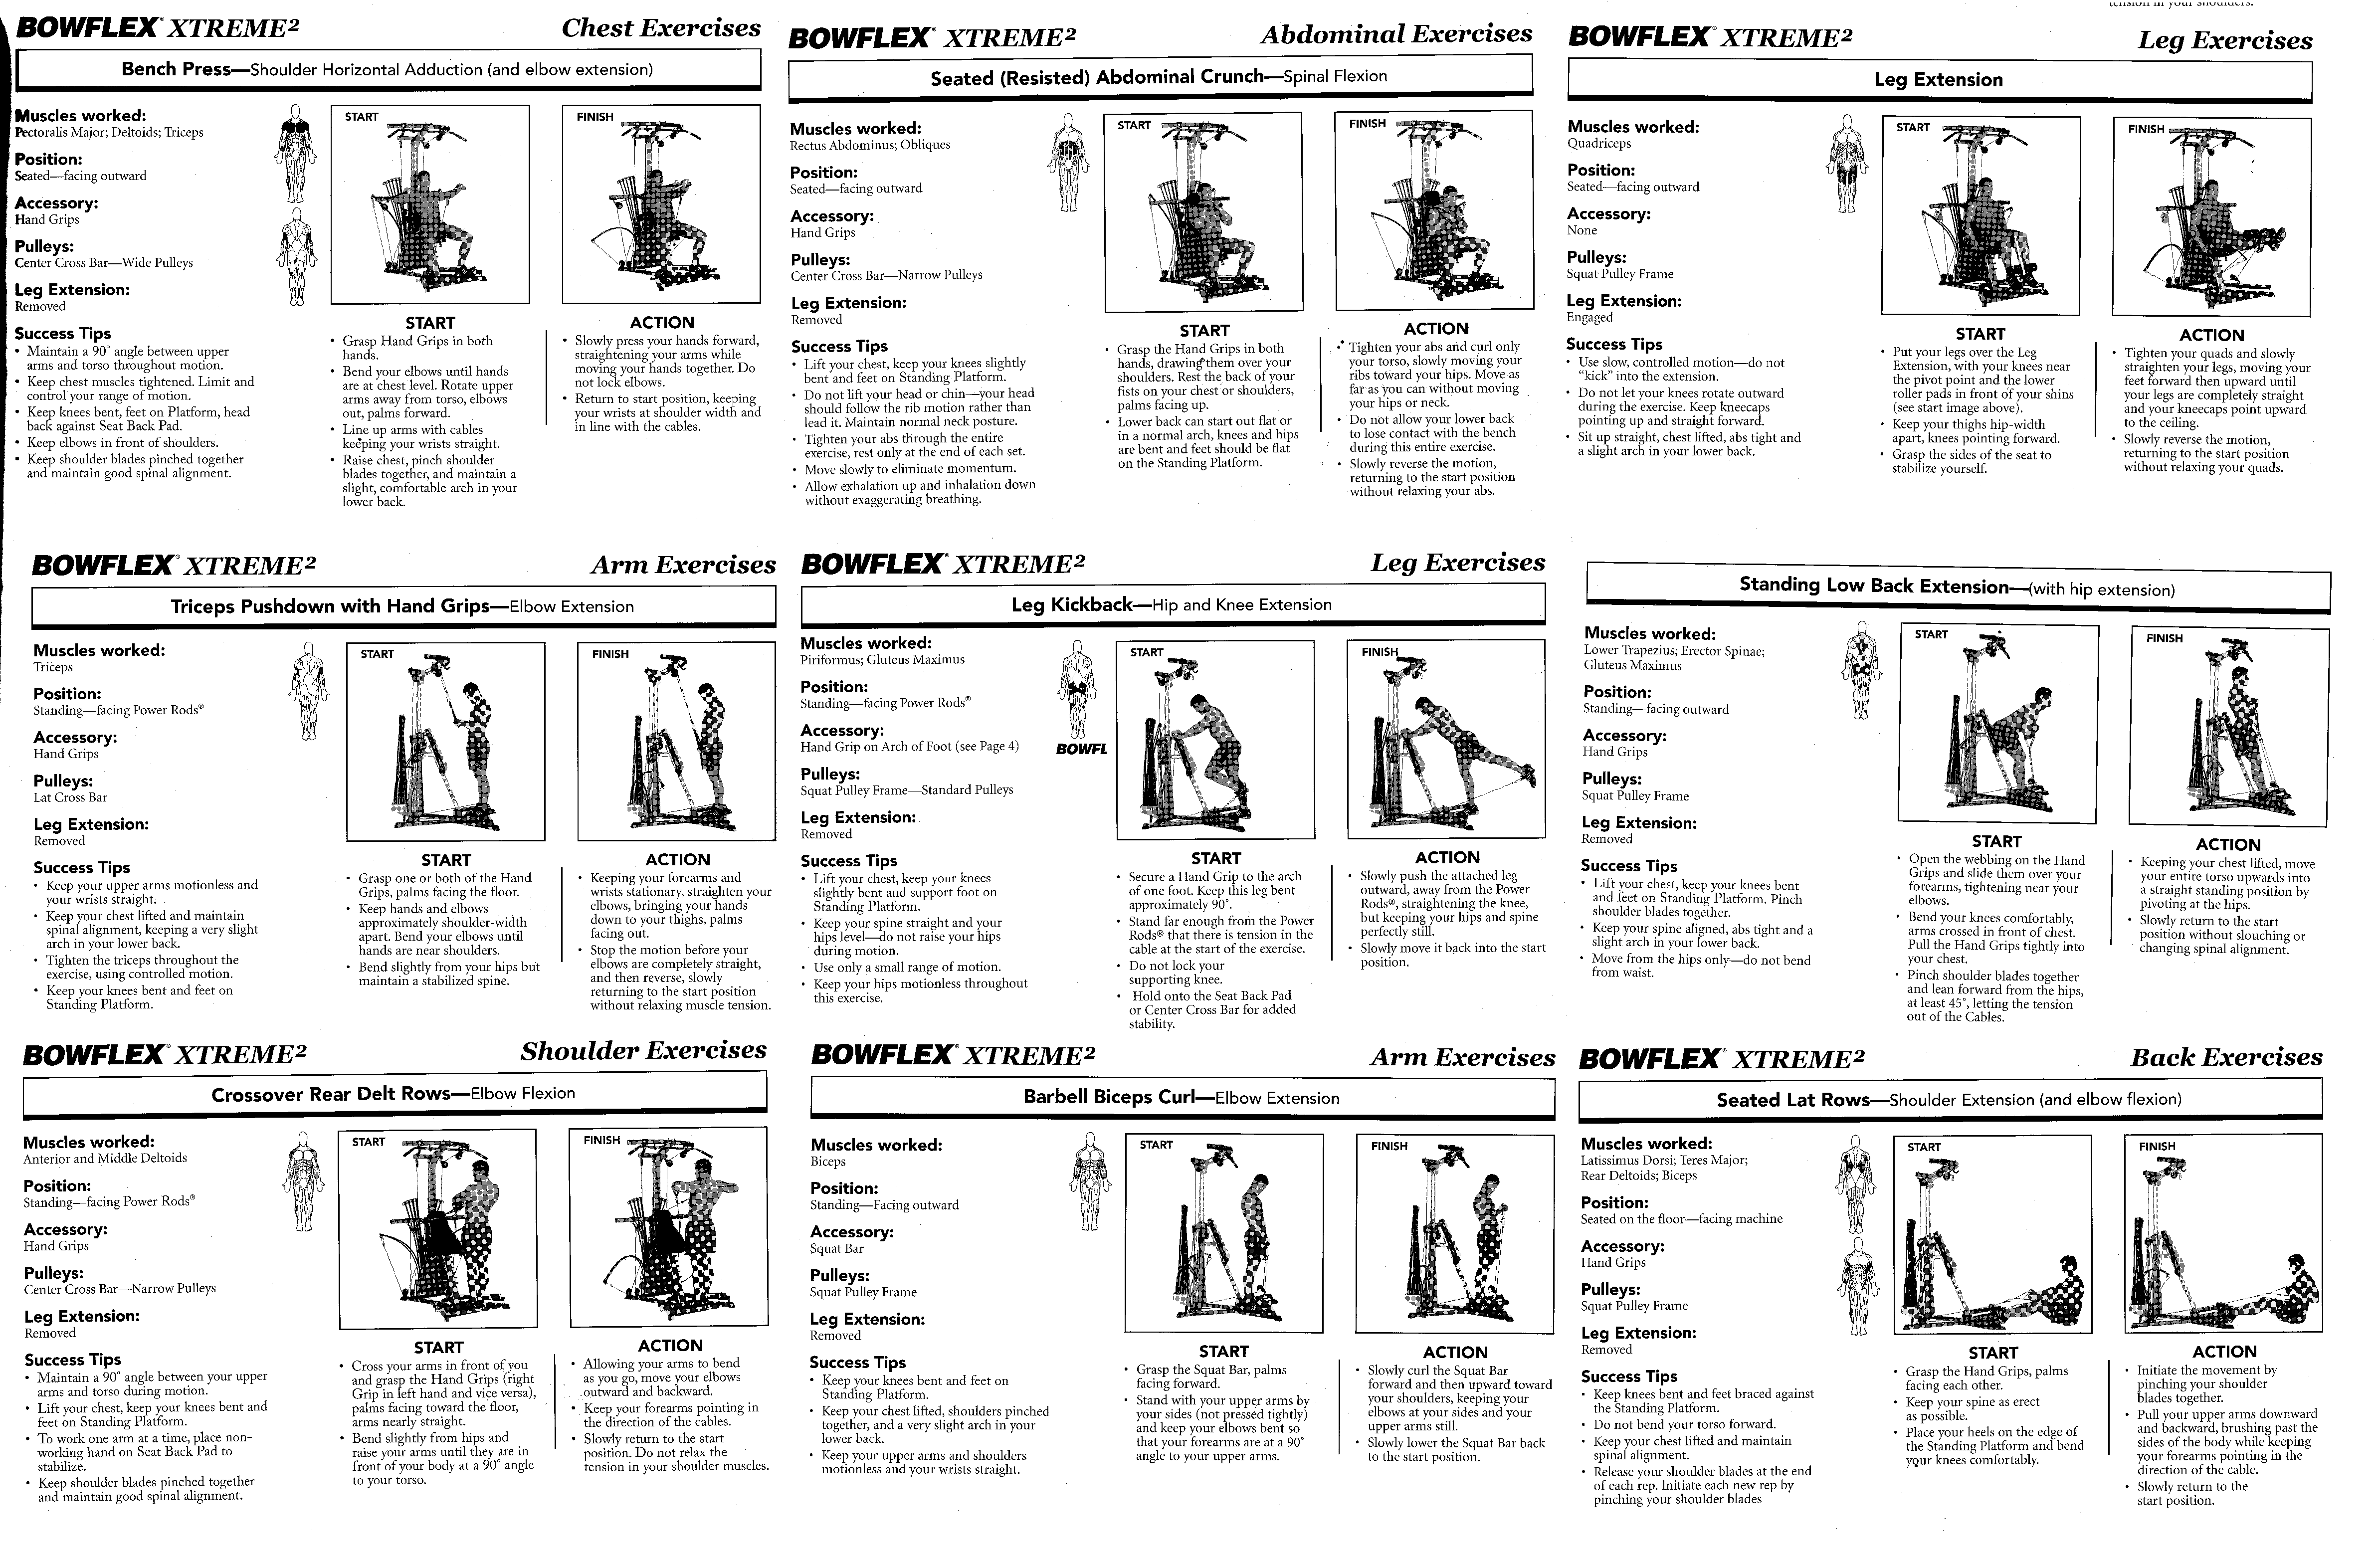 bowflex xtreme 2 exercise manual pdf